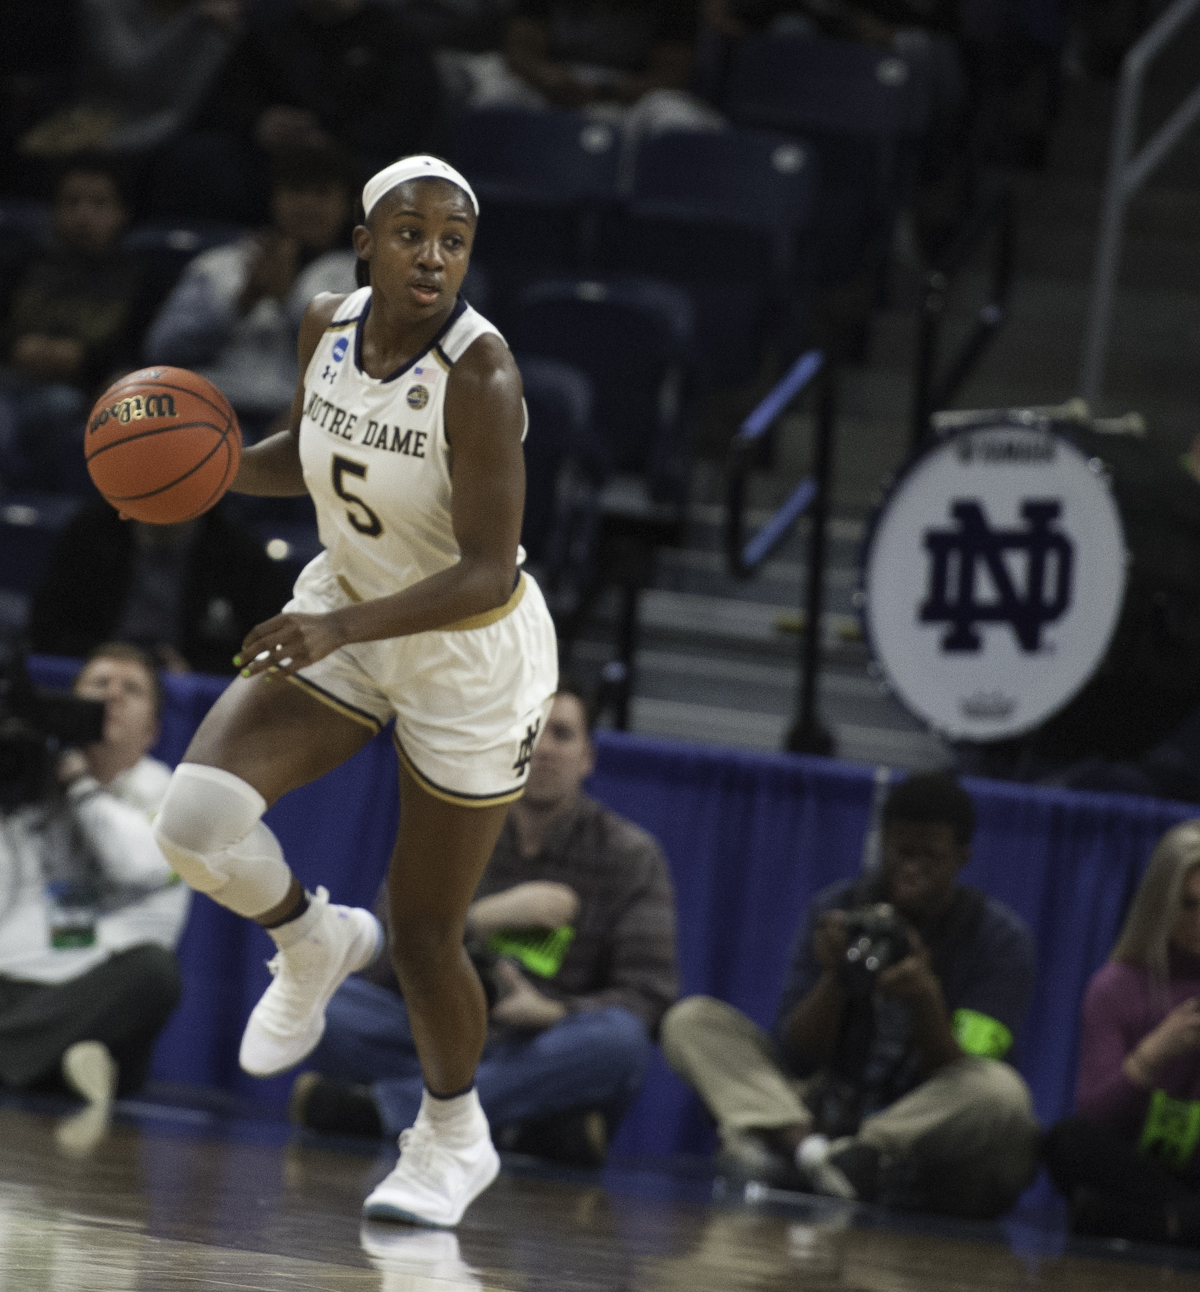 Notre Dame Women's Basketball: Irish face Stanford for spot in Final Four